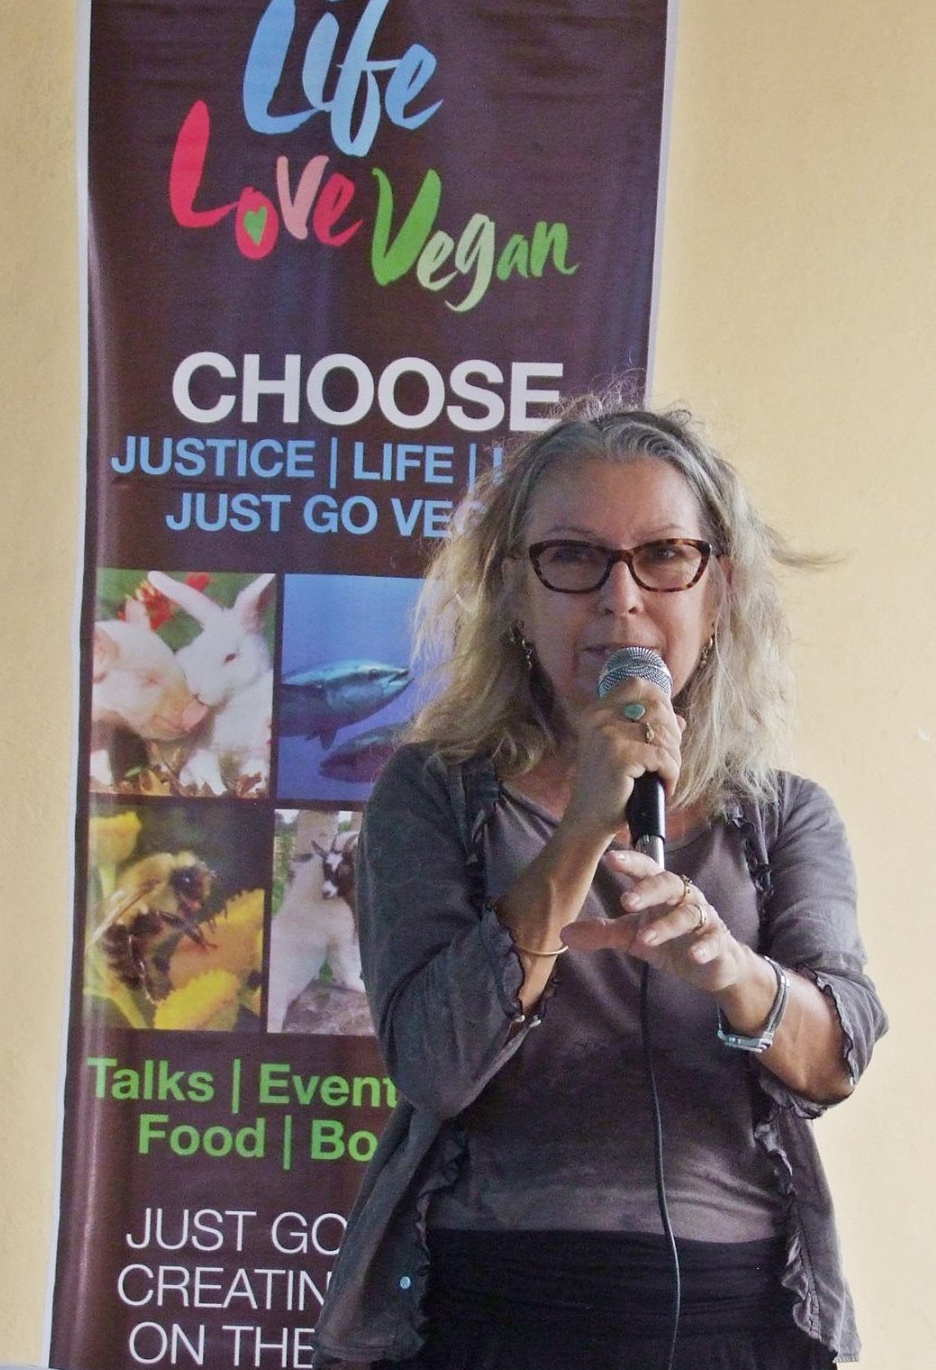 """Pamela stands with a microphone, facing the camera. A banner behind reads """"Life Love Vegan"""""""